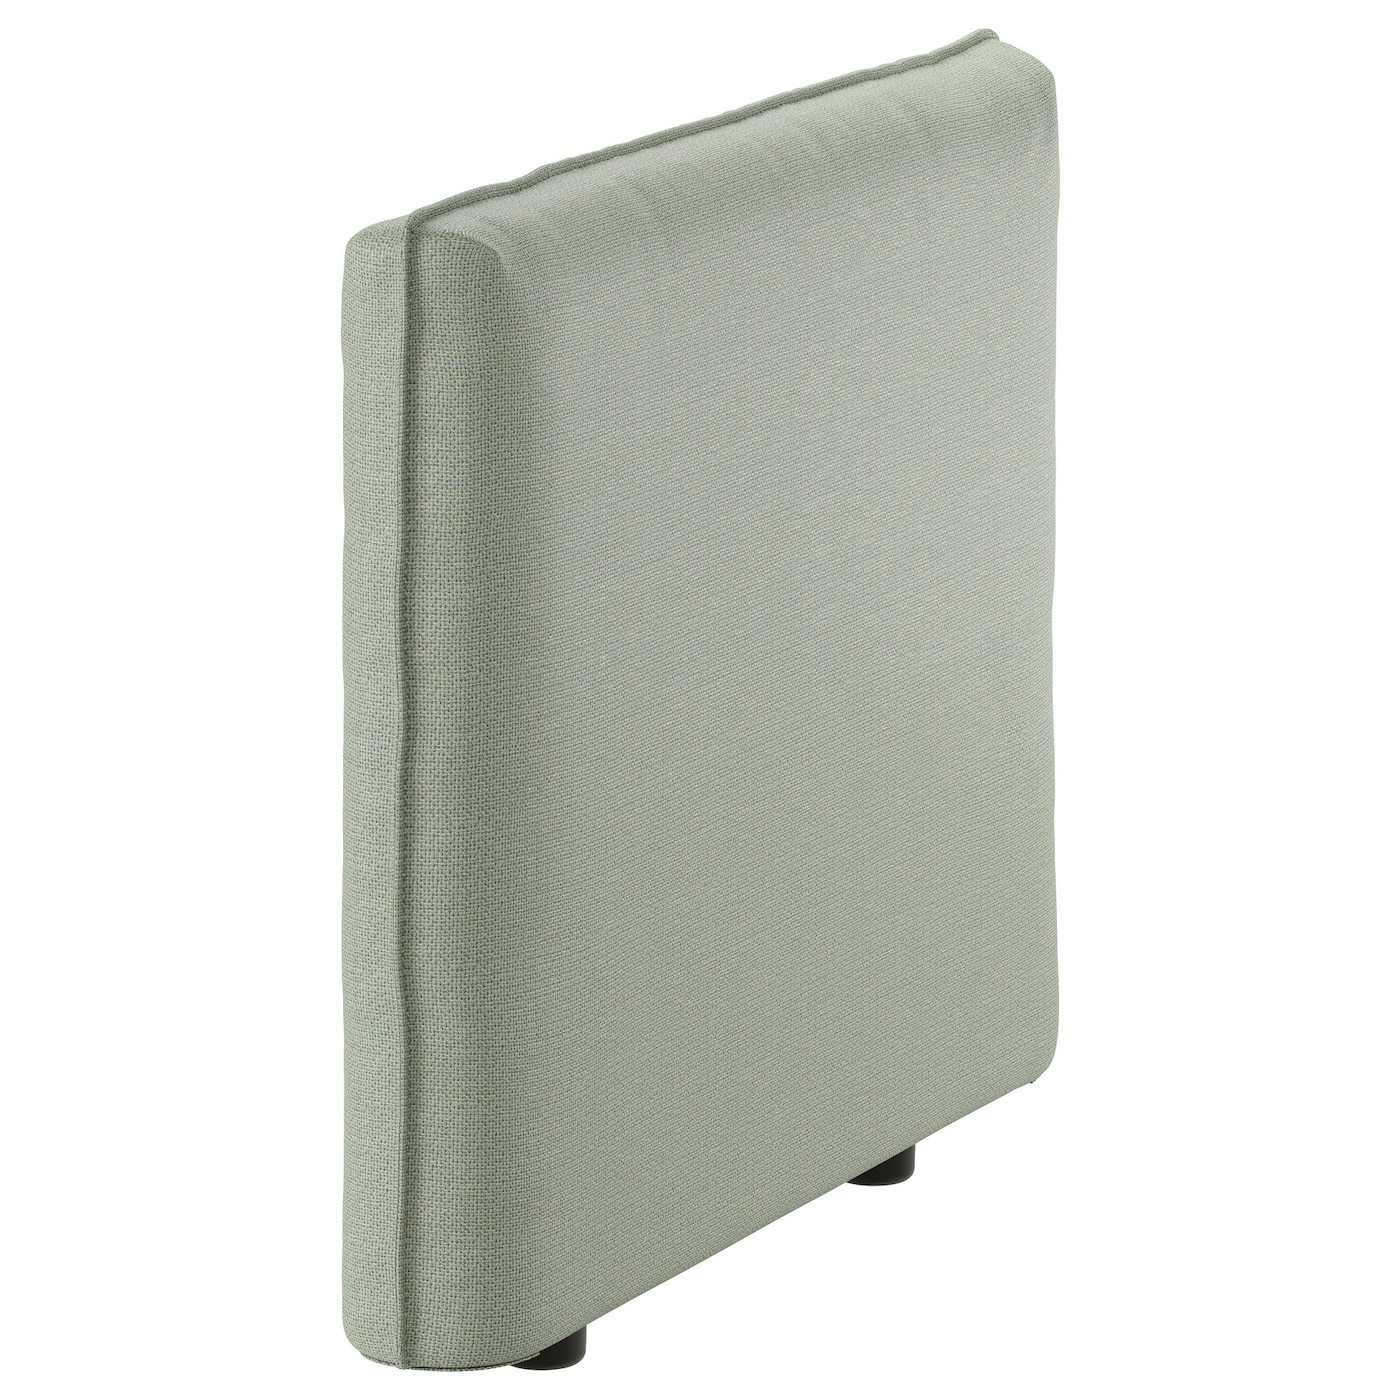 IKEA VALLENTUNA cover for armrest 10 year guarantee. Read about the terms in the guarantee brochure.